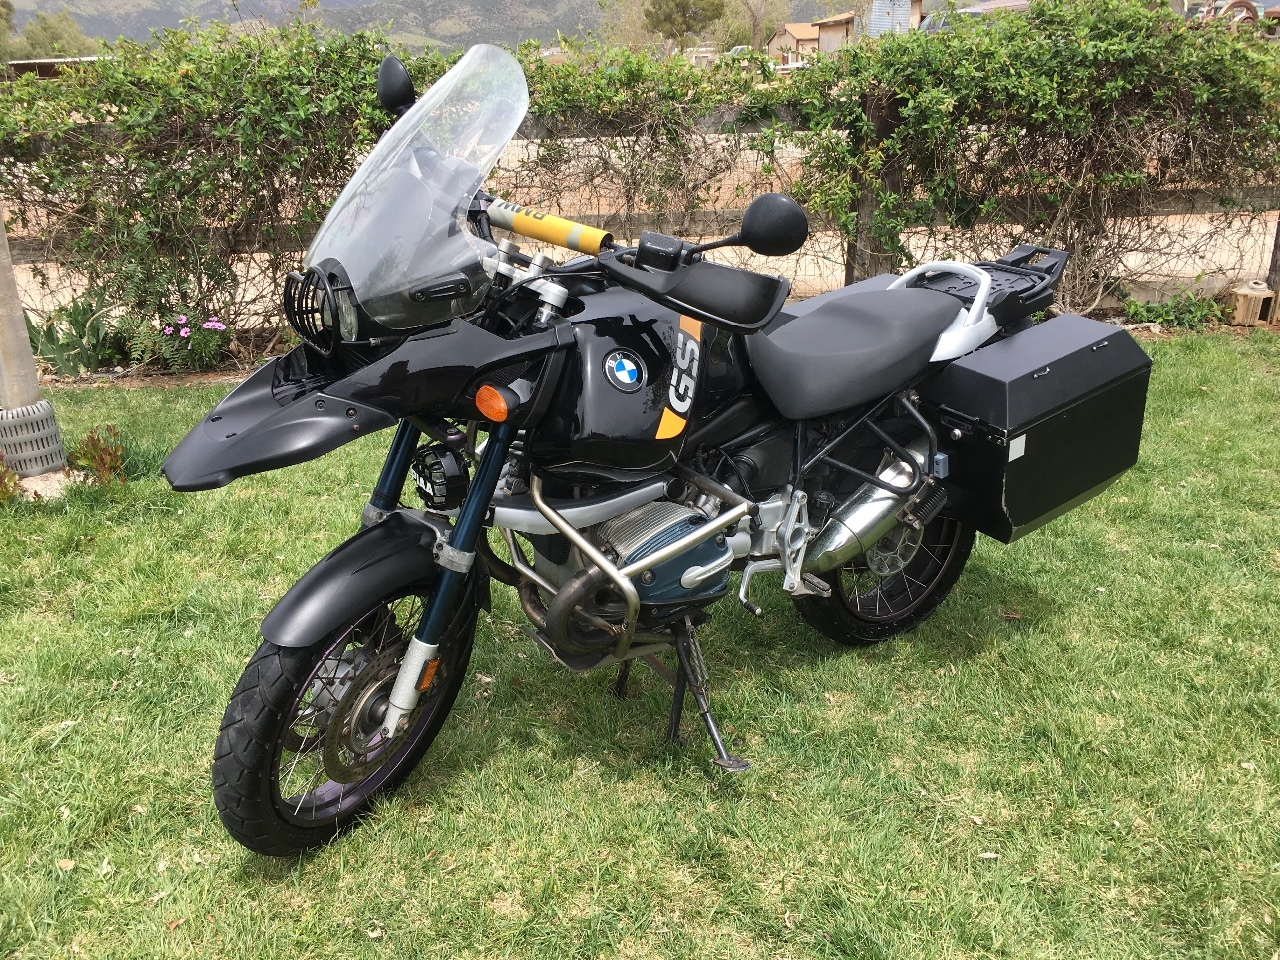 California - Motorcycles For Sale - CycleTrader.com